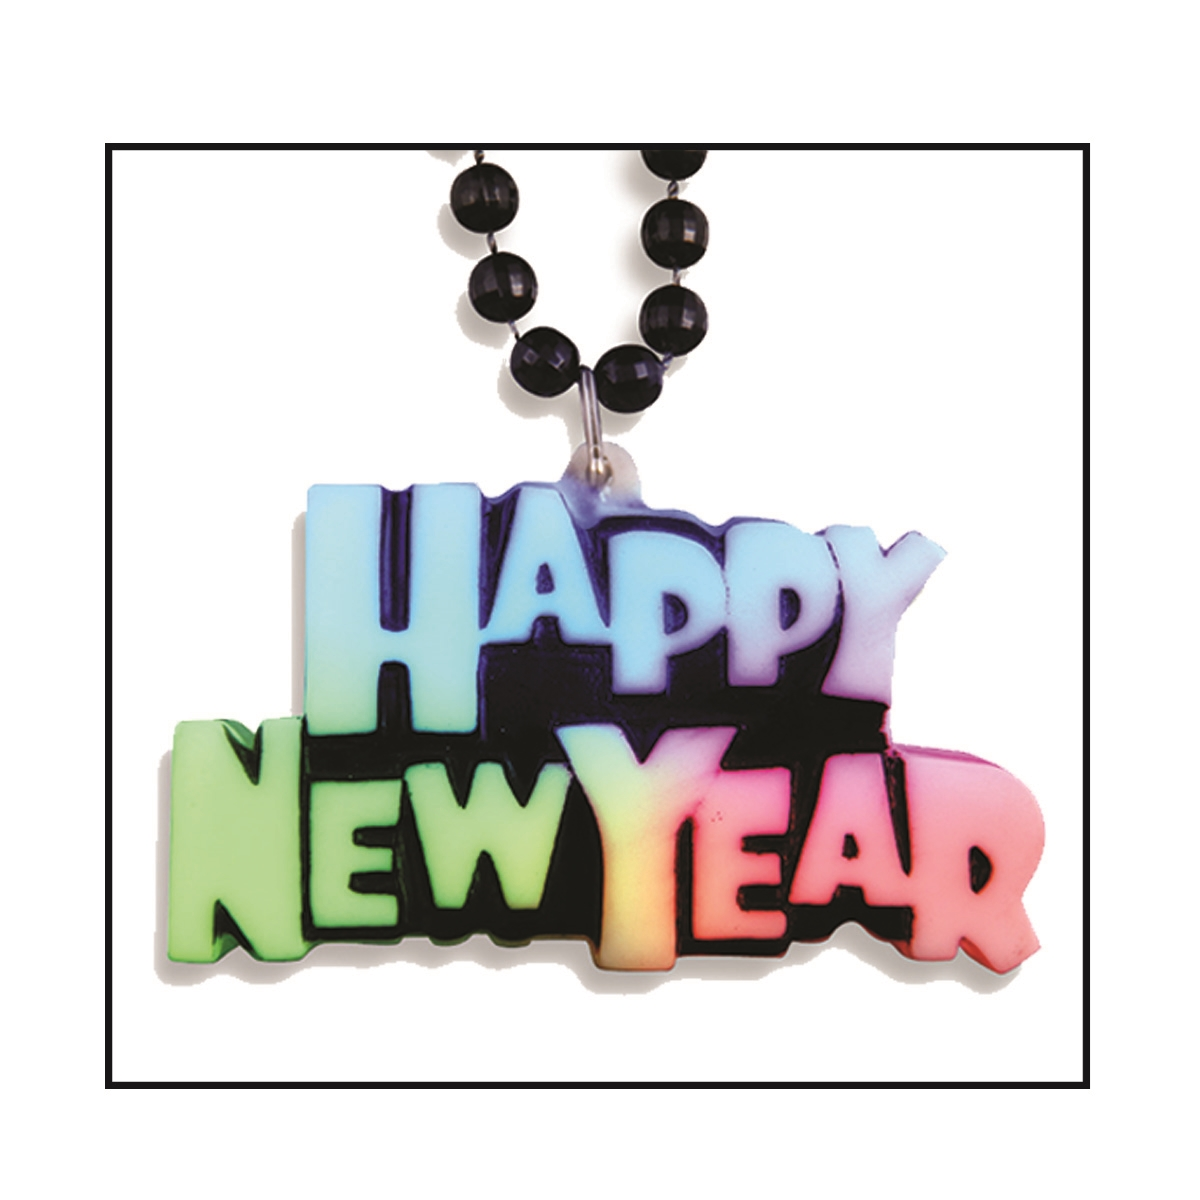 LED Happy New Year Necklace (Pack of 12) Light Up Necklace, LED, Glow in the dark, Party Favors, Inexpensive Party Favors, Wholesale, Bulk, New Years Eve